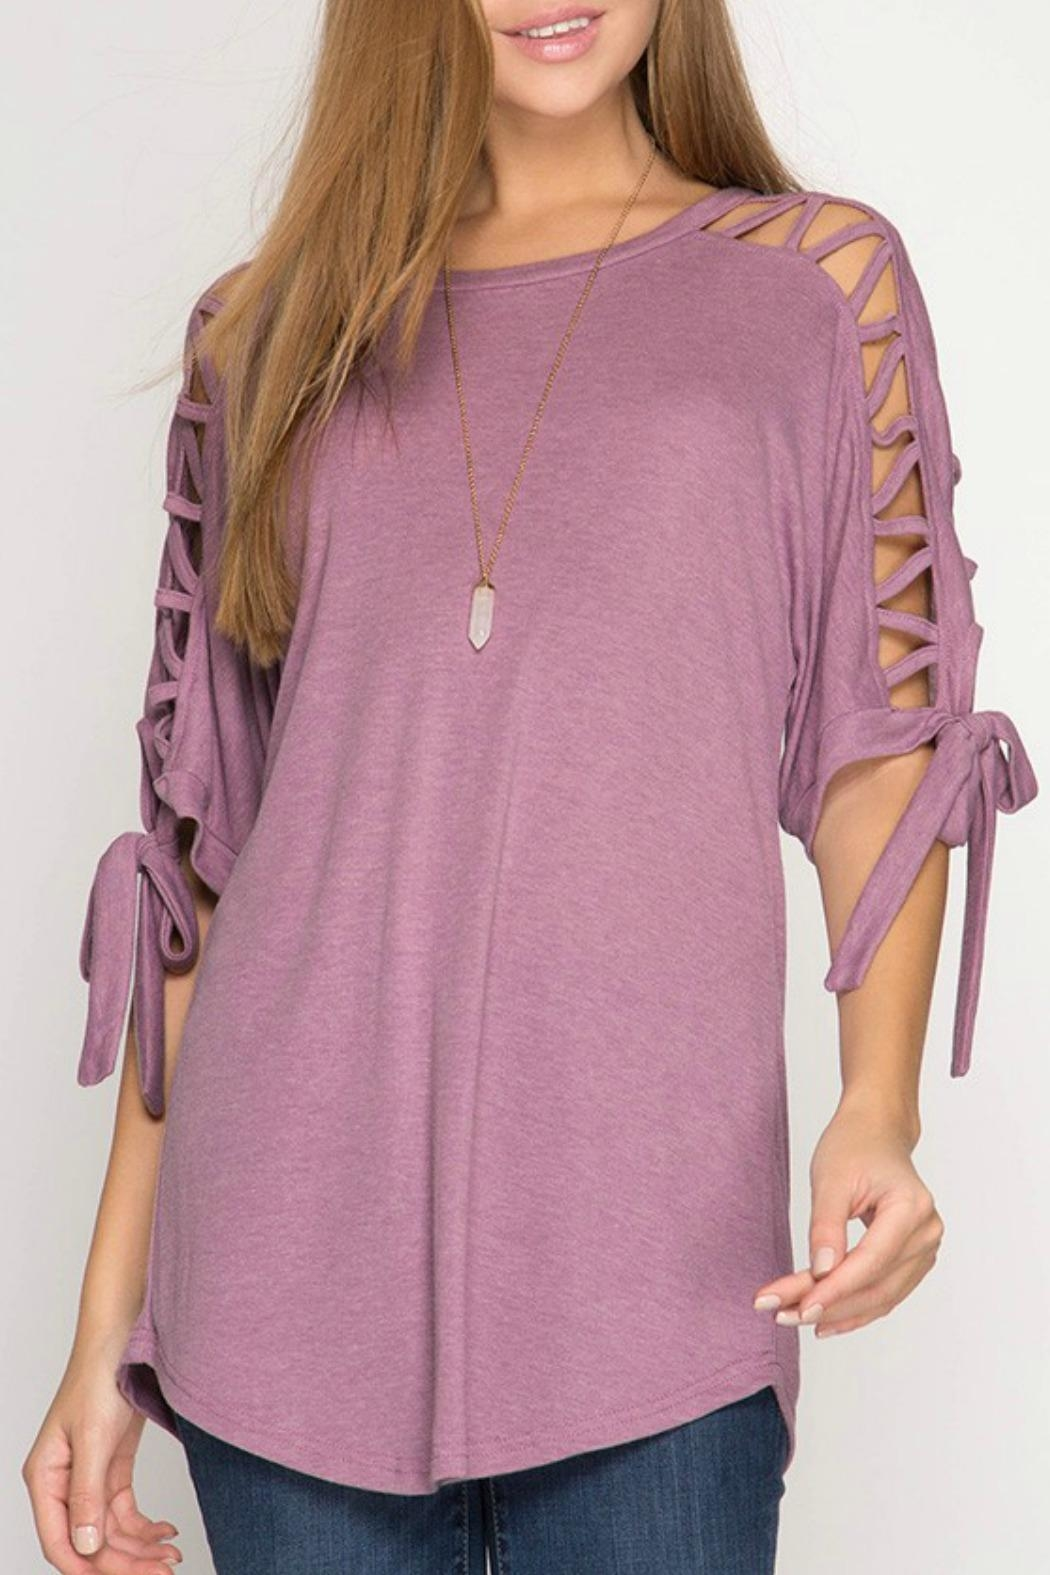 She + Sky Mauve Tie-Sleeve Top - Main Image